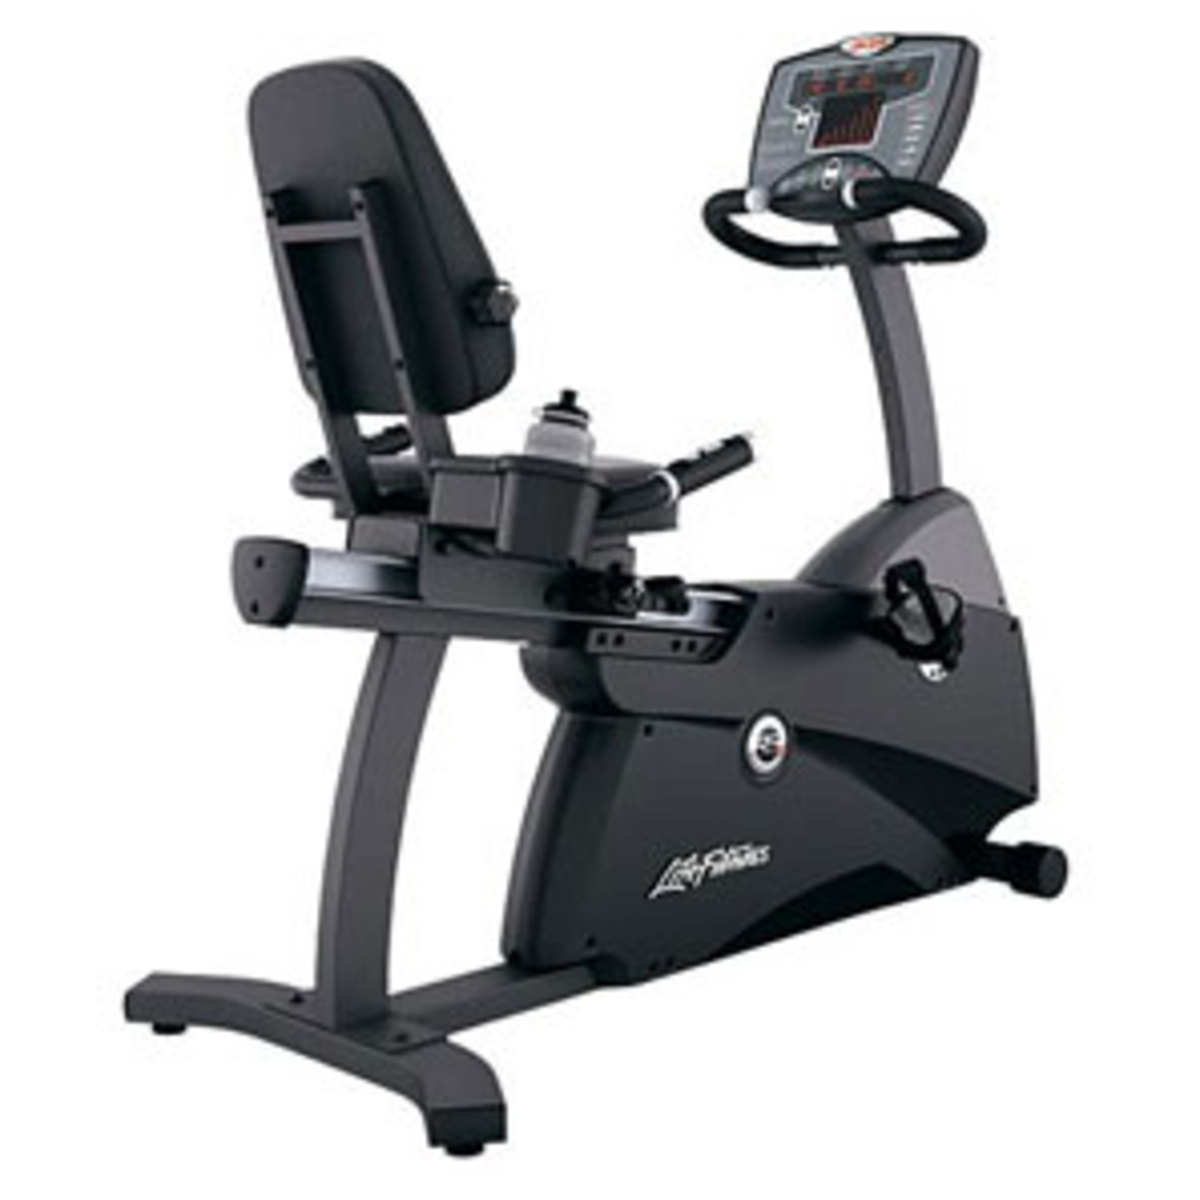 Best Exercise Bikes For Seniors The recumbent exercise bike